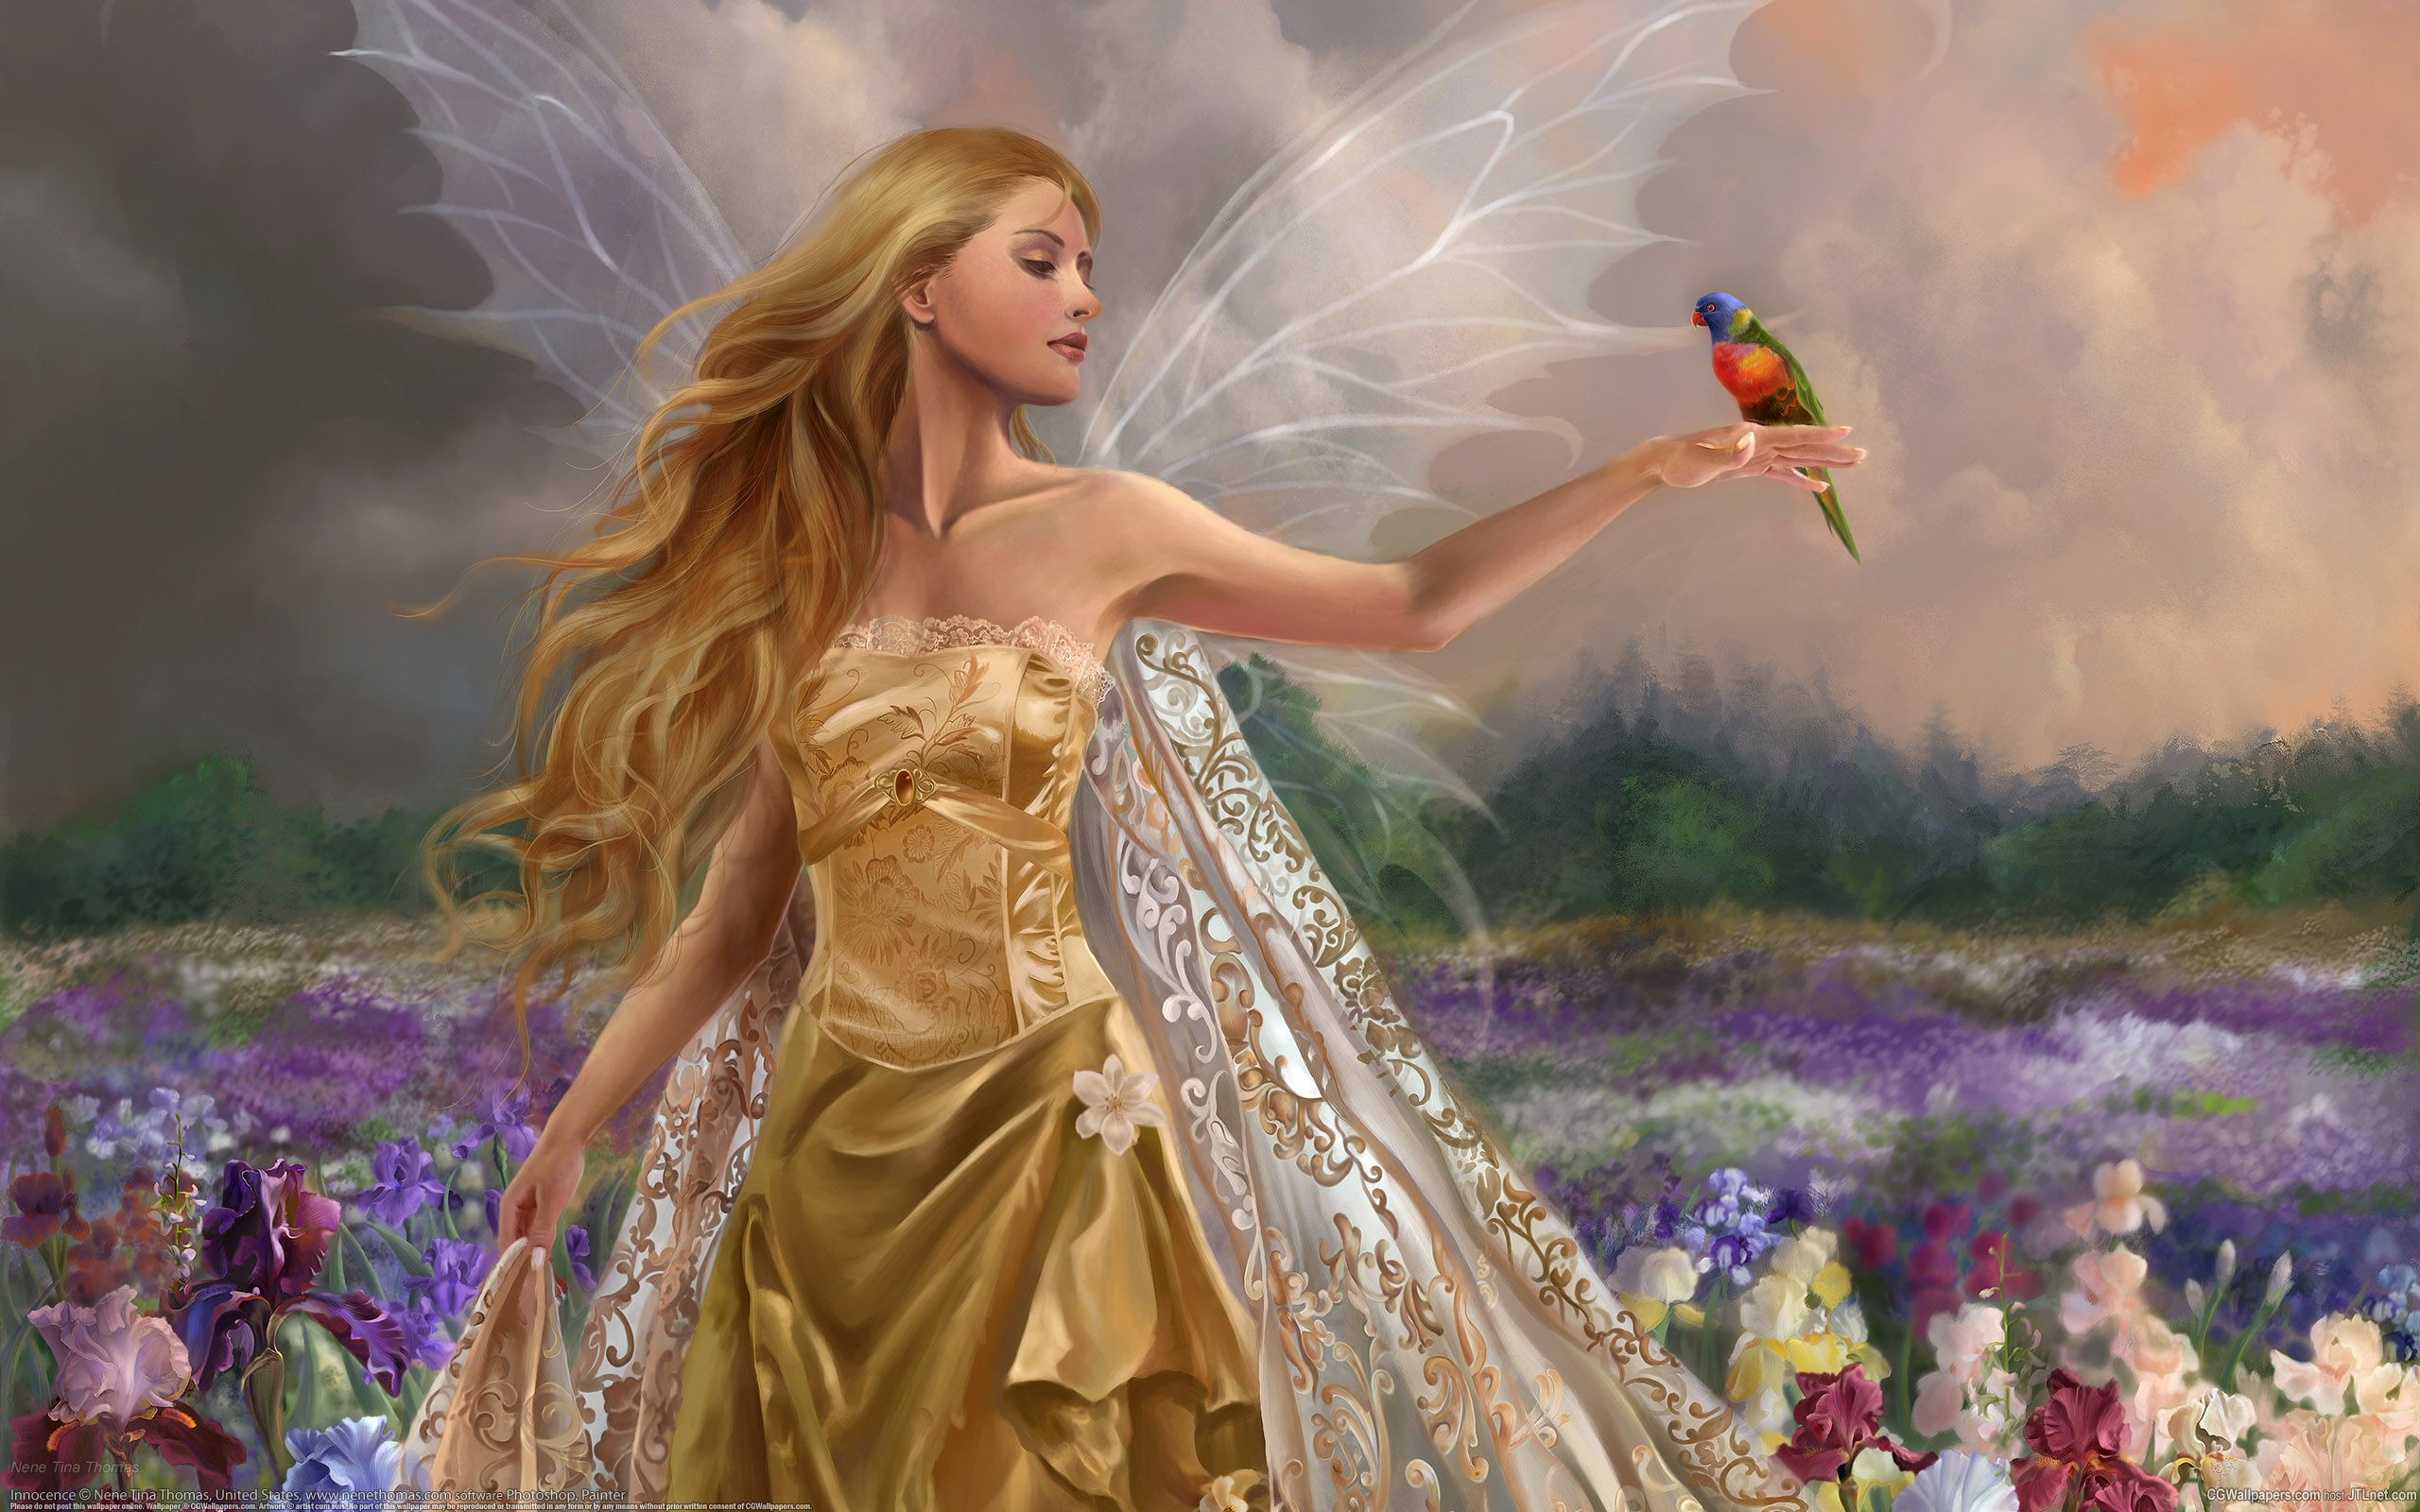 beautiful angels of god | beautiful-fairy-love-angels-27525265-2560